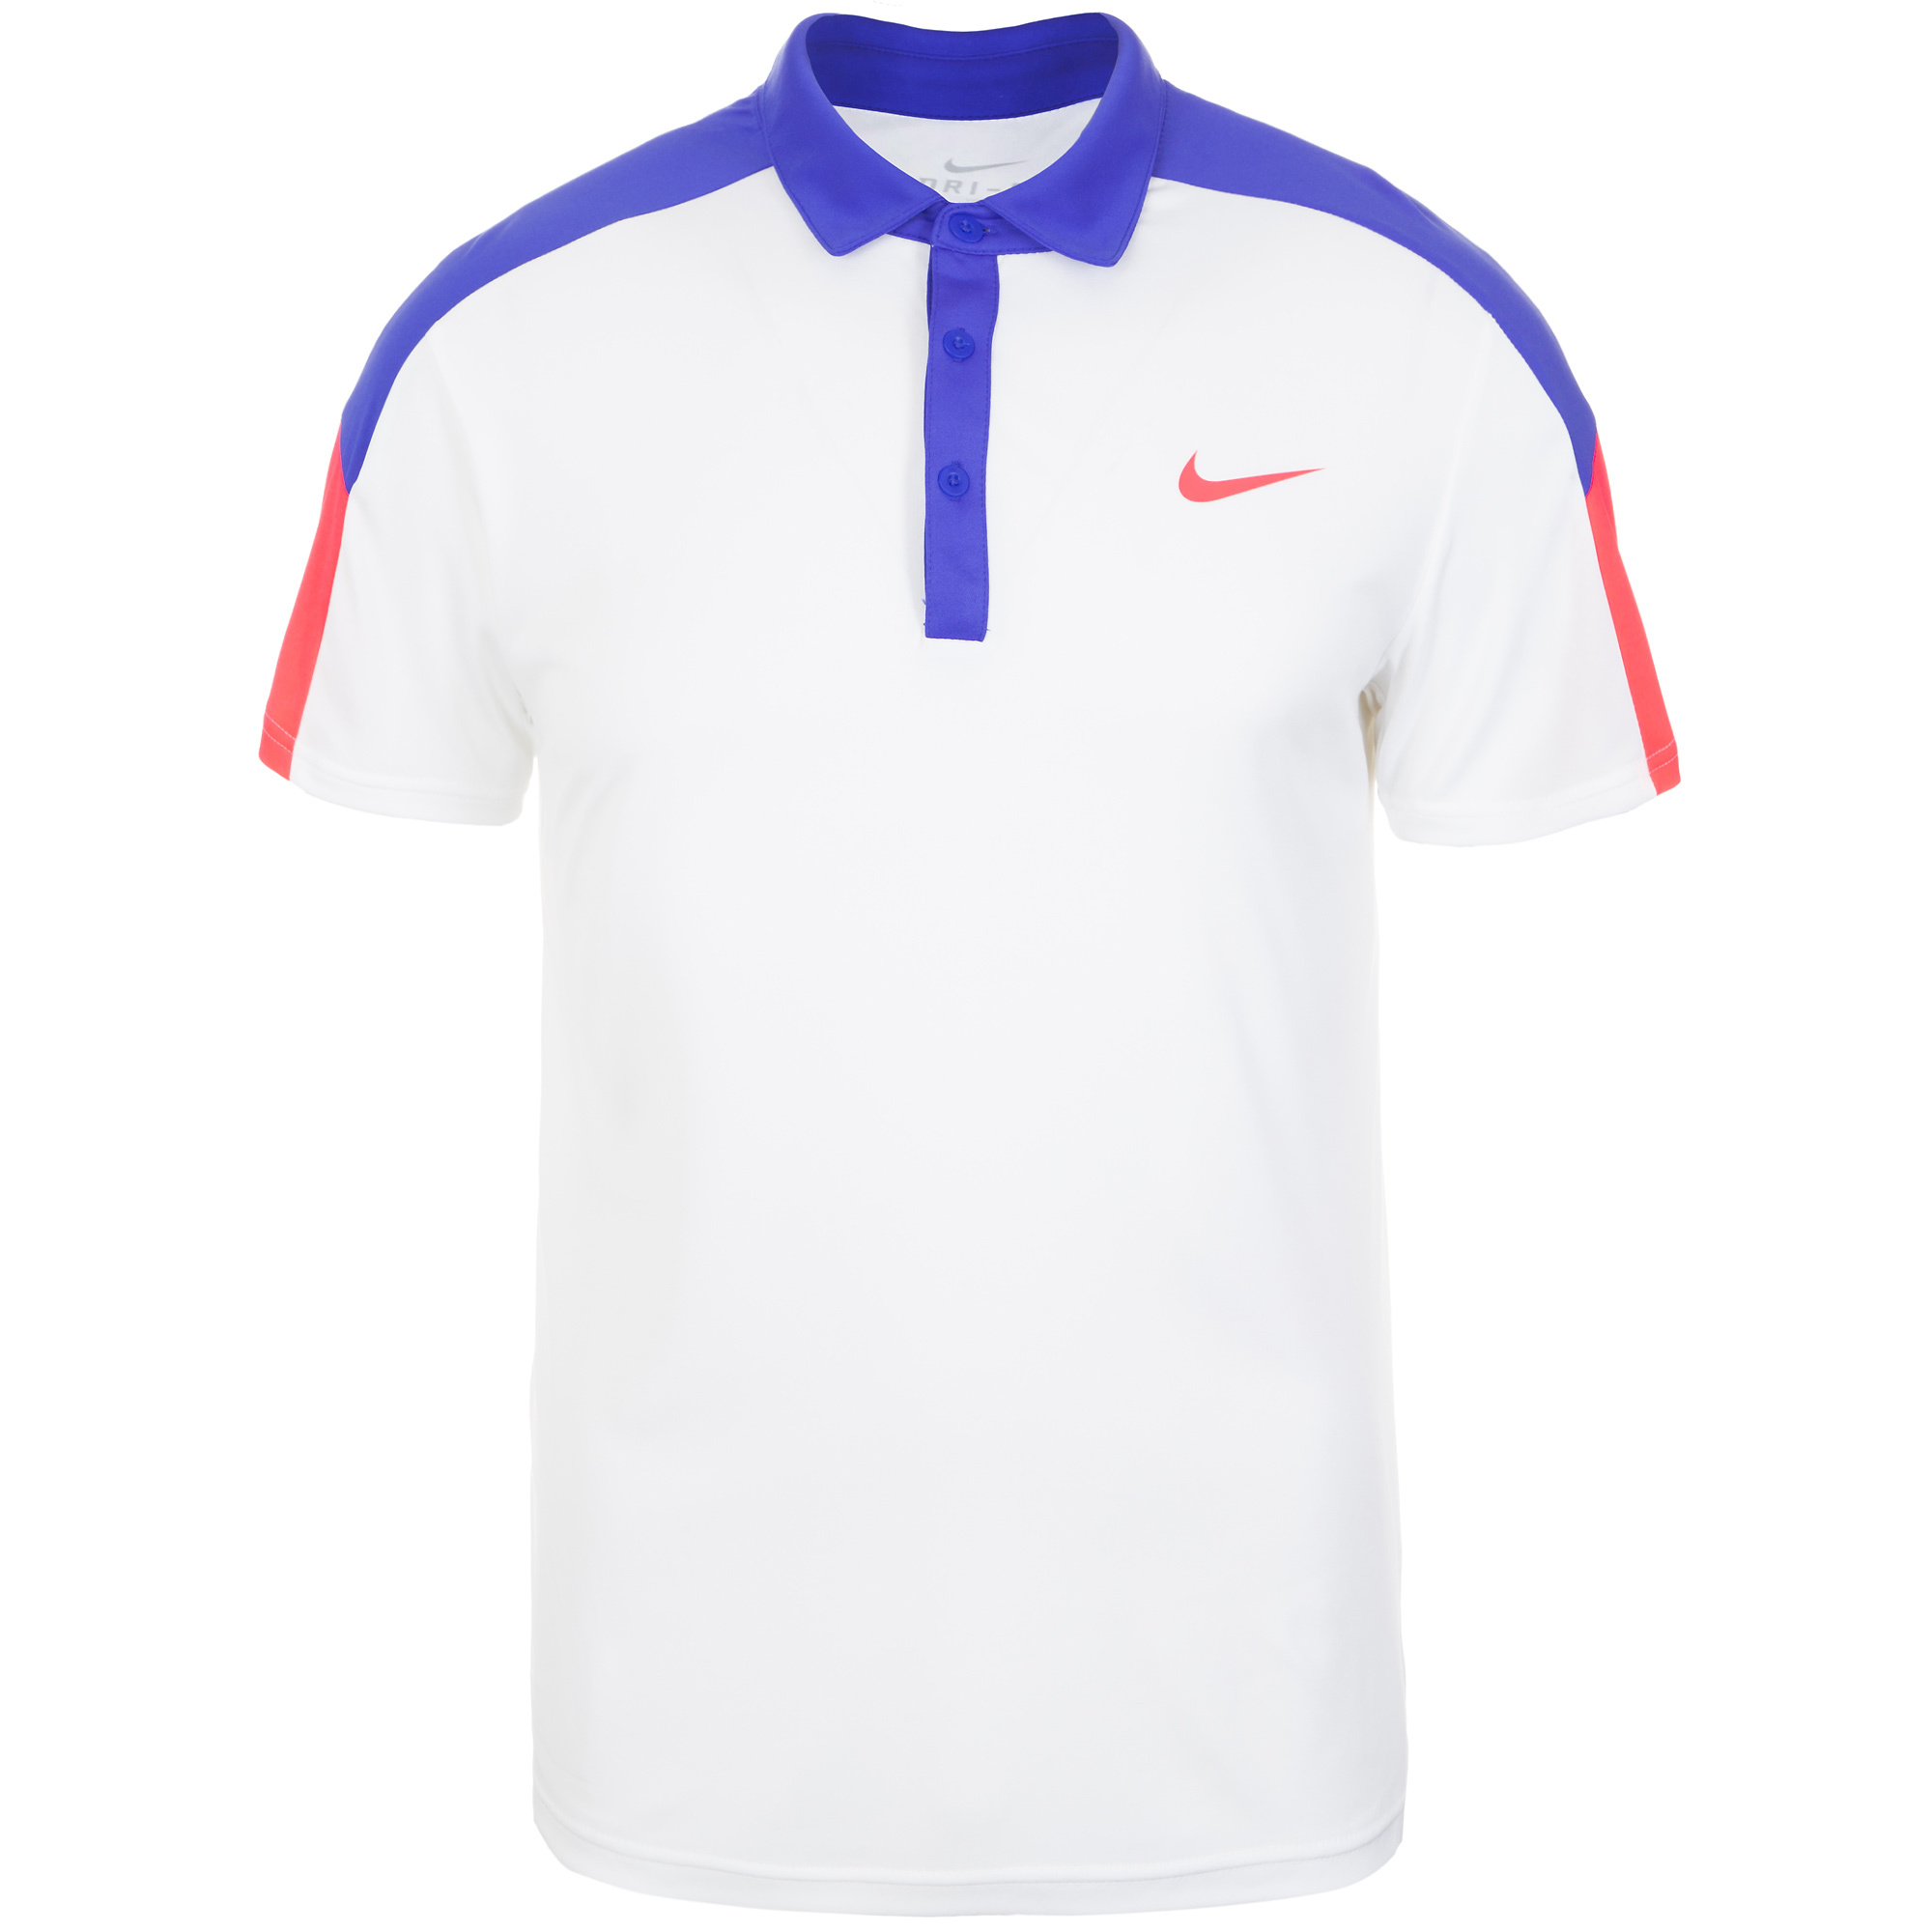 Nike Team Court Polo 644788-103, Nike Team Court Polo 644788-103 в Новосибирске, Nike Team Court Polo 644788-103 цена, Nike Team Court Polo 644788-103 купить, Nike Team Court Polo 644788-103 приобрети, Nike Team Court Polo 644788-103 дешево, Nike Team Court Polo 644788-103 с доставкой, Nike Team Court Polo 644788-103 от дистрибьютора.